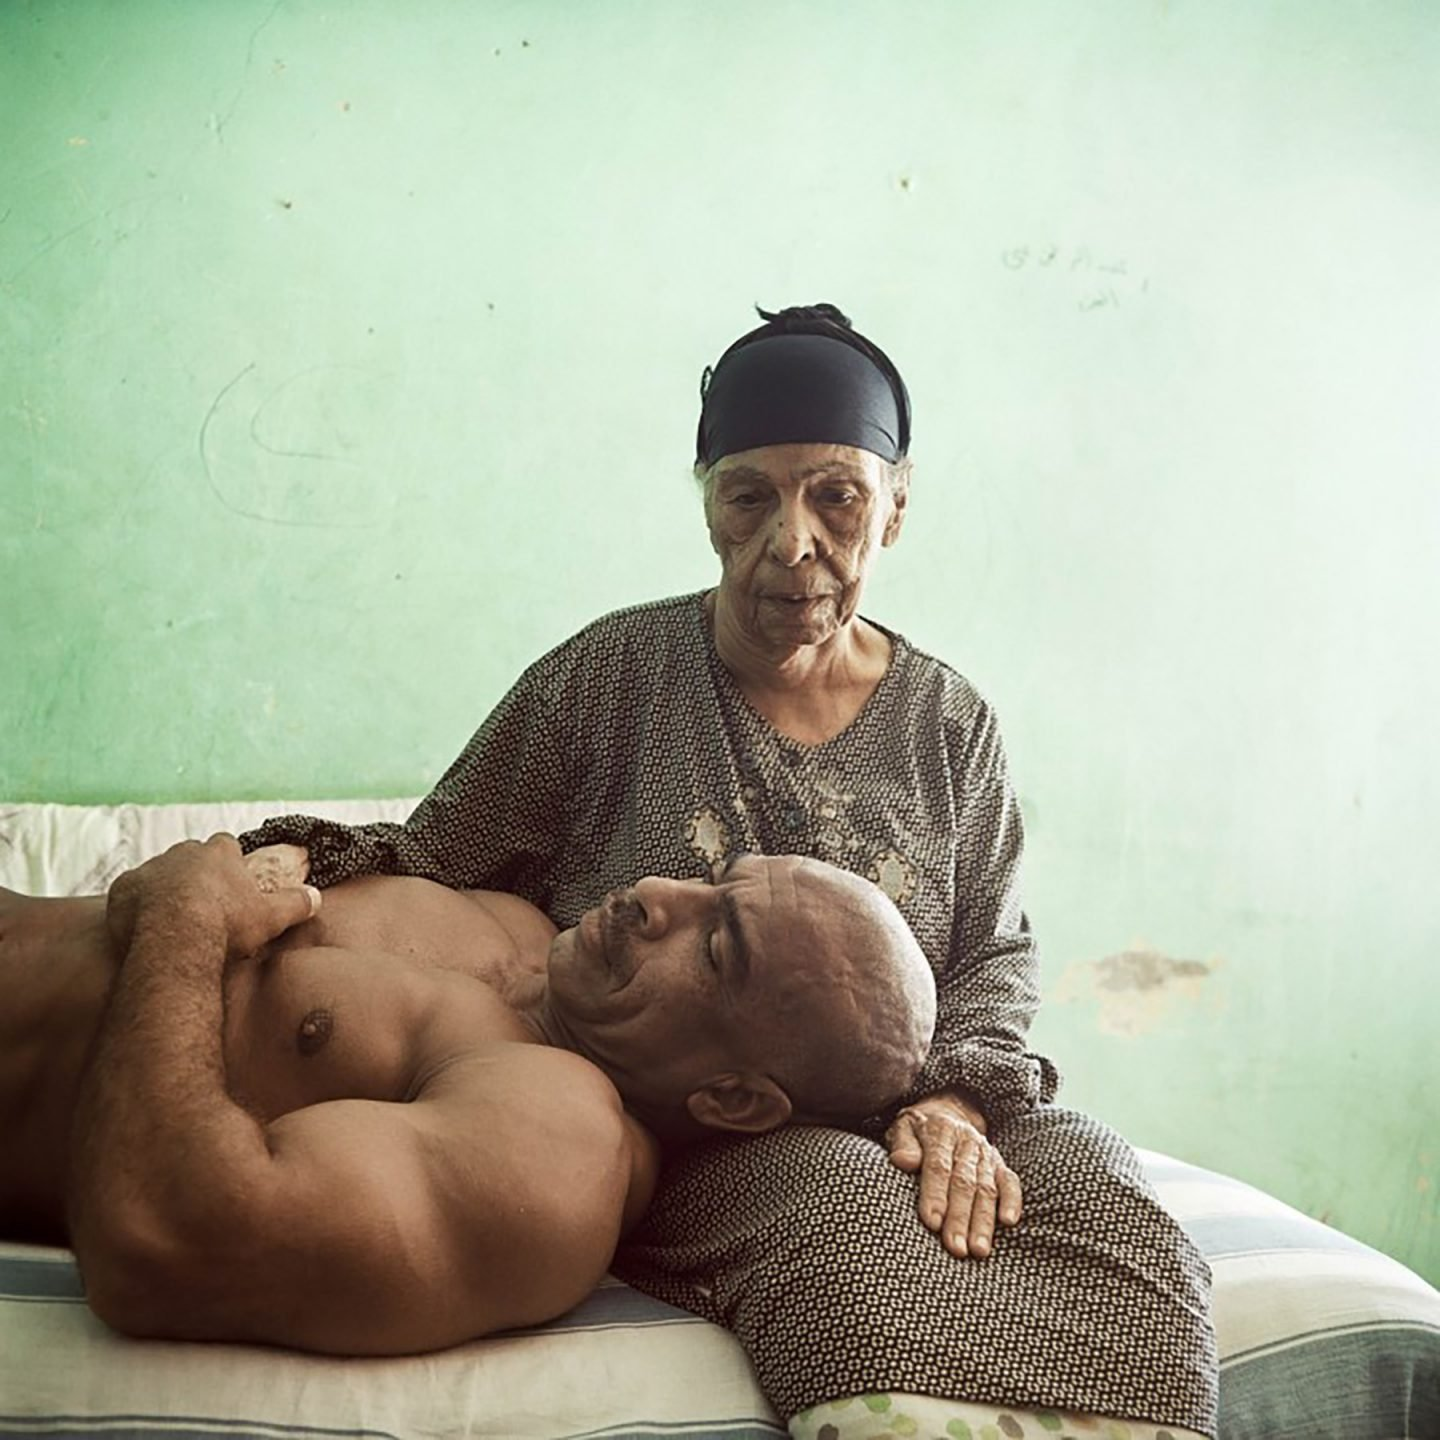 iGNANT-Photography-Denis-Dailleux-Egypt-Mother-And-Son-02